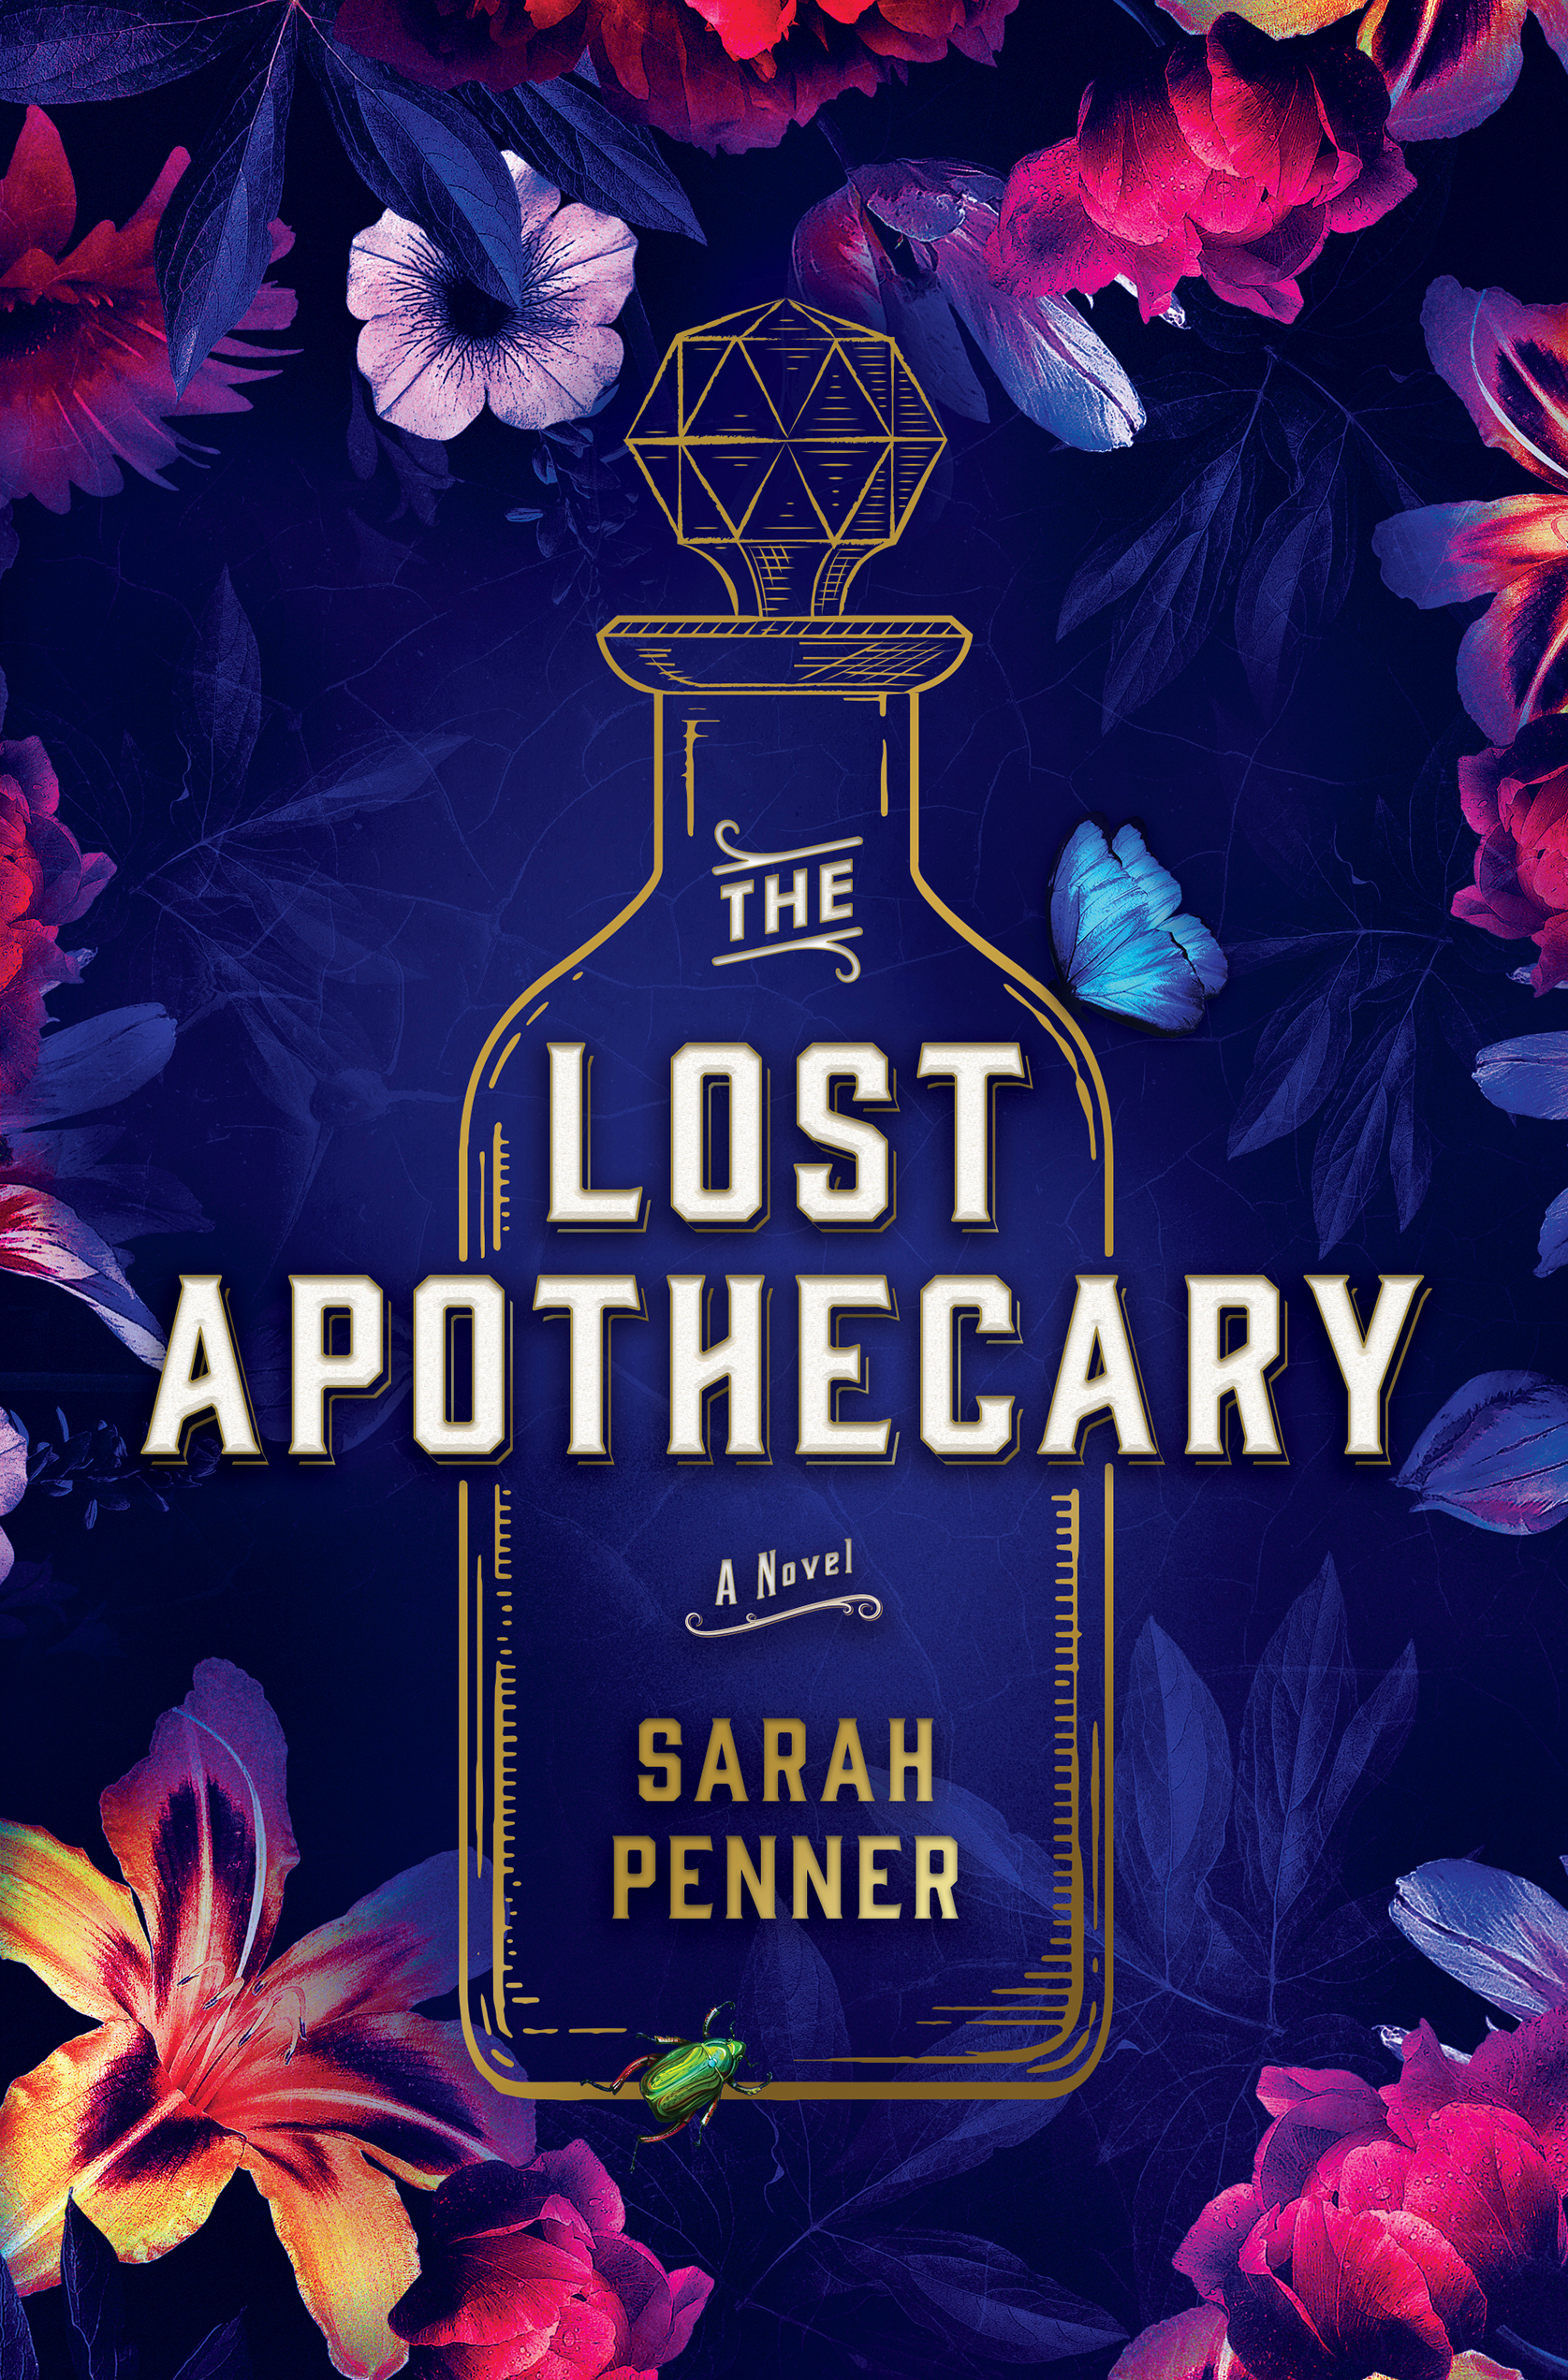 Cover of The Lost Apothecary by Sarah Penner